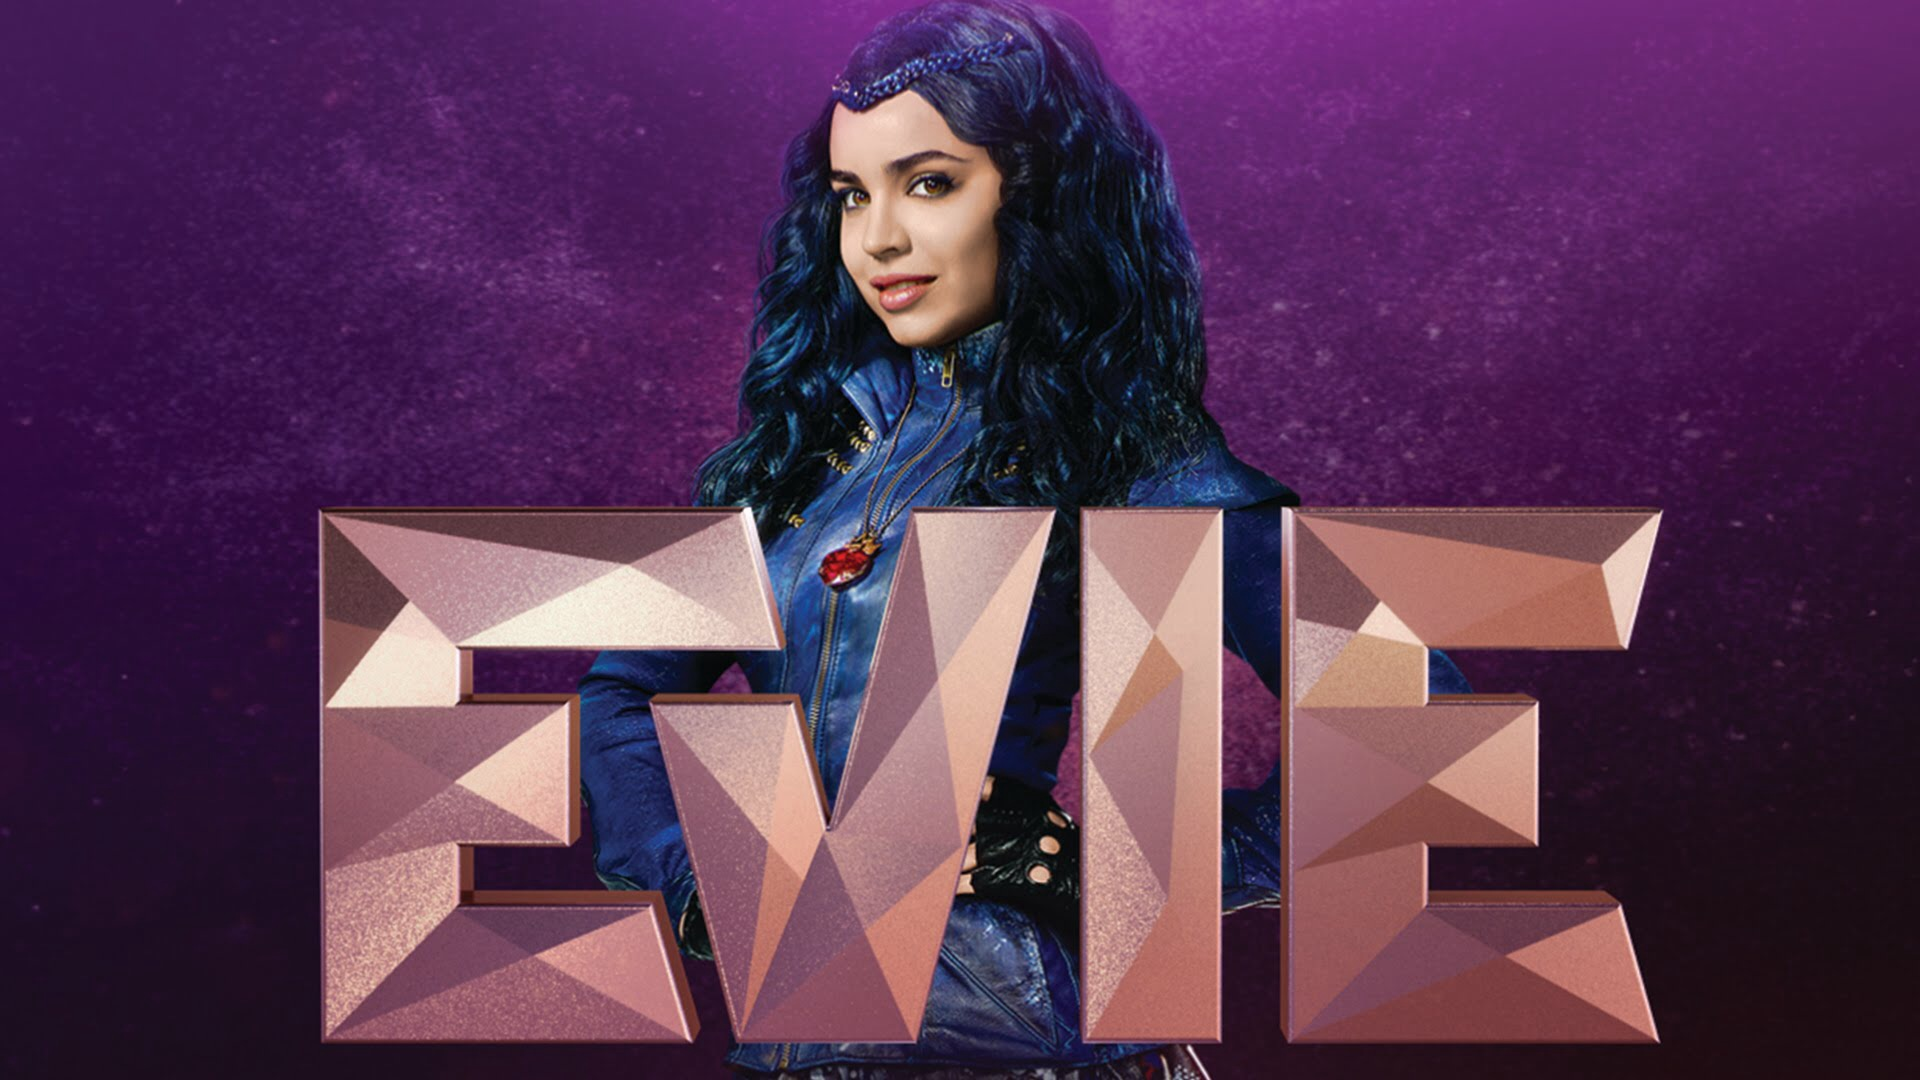 descendants images evie hd wallpaper and background photos